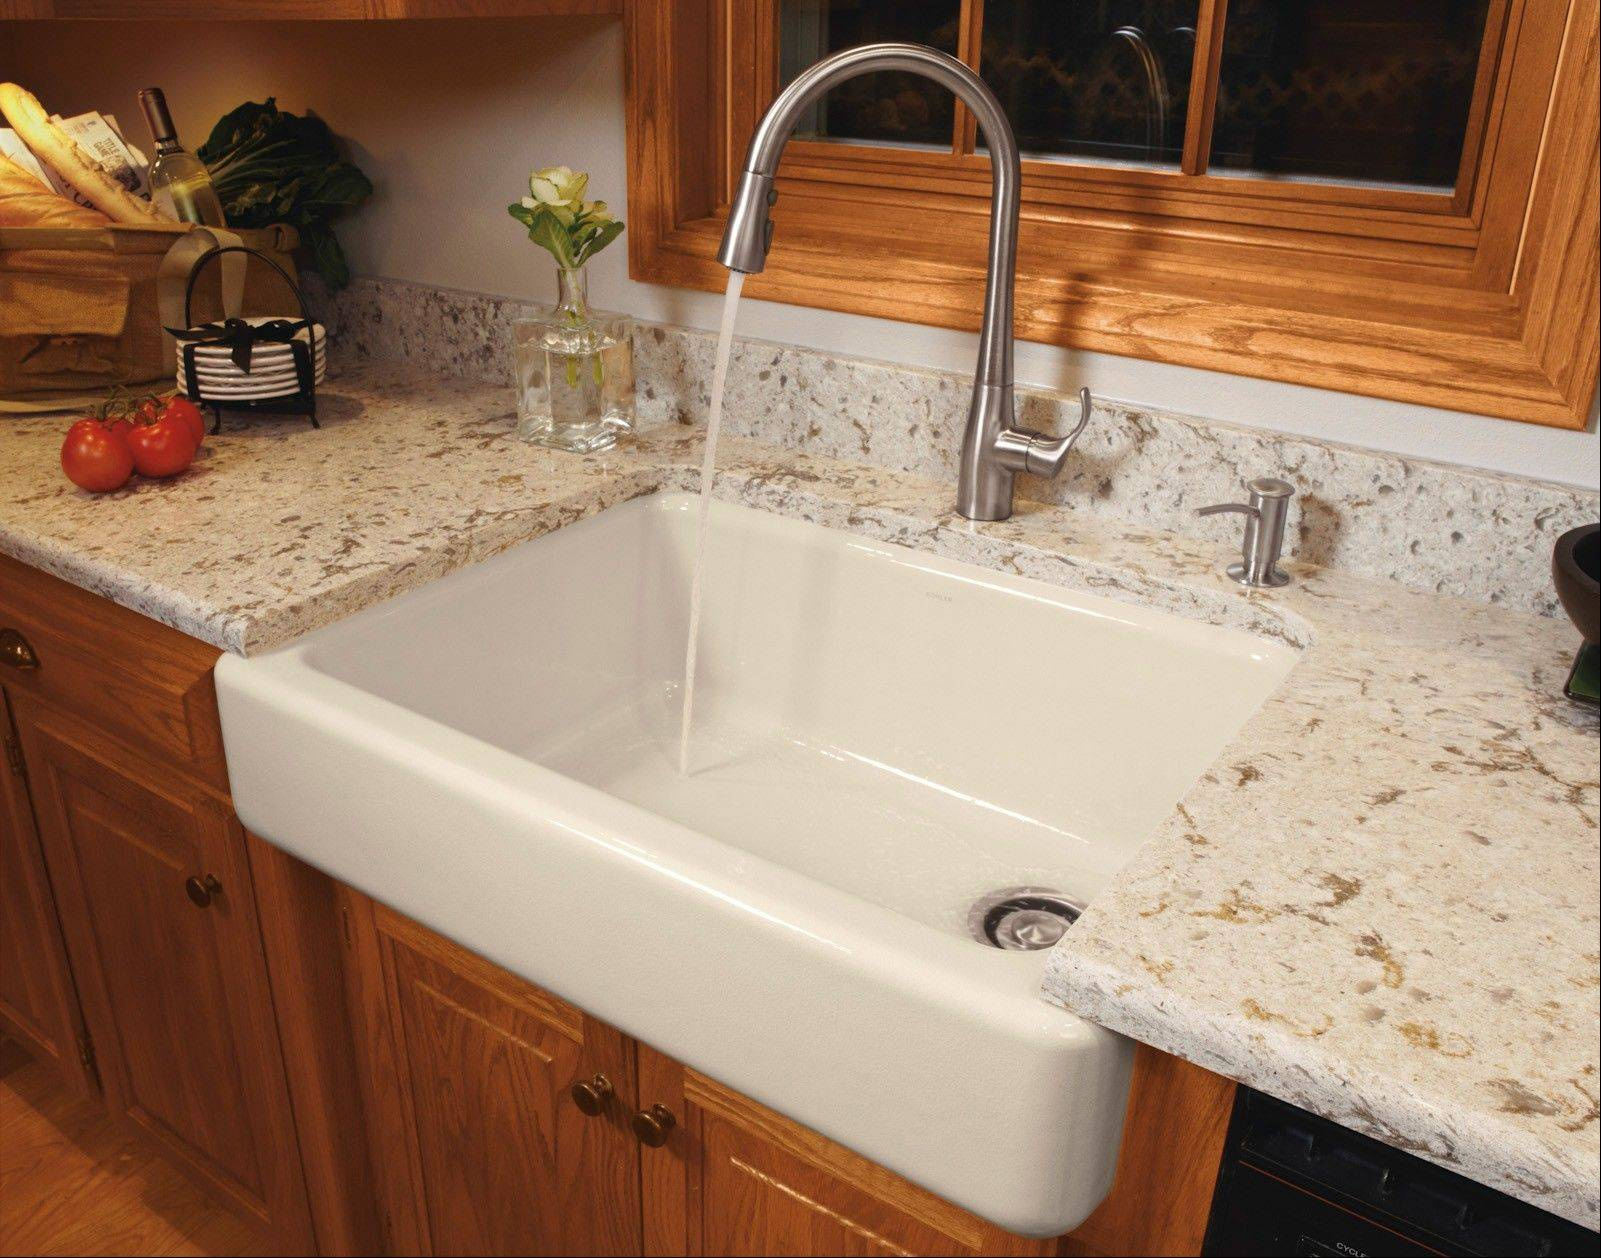 Cast-iron, apron front kitchen sinks can be a nice choice since most cast-iron plumbing fixtures contain recycled materials. Some manufacturers have expanded color choices to include more natural colors.